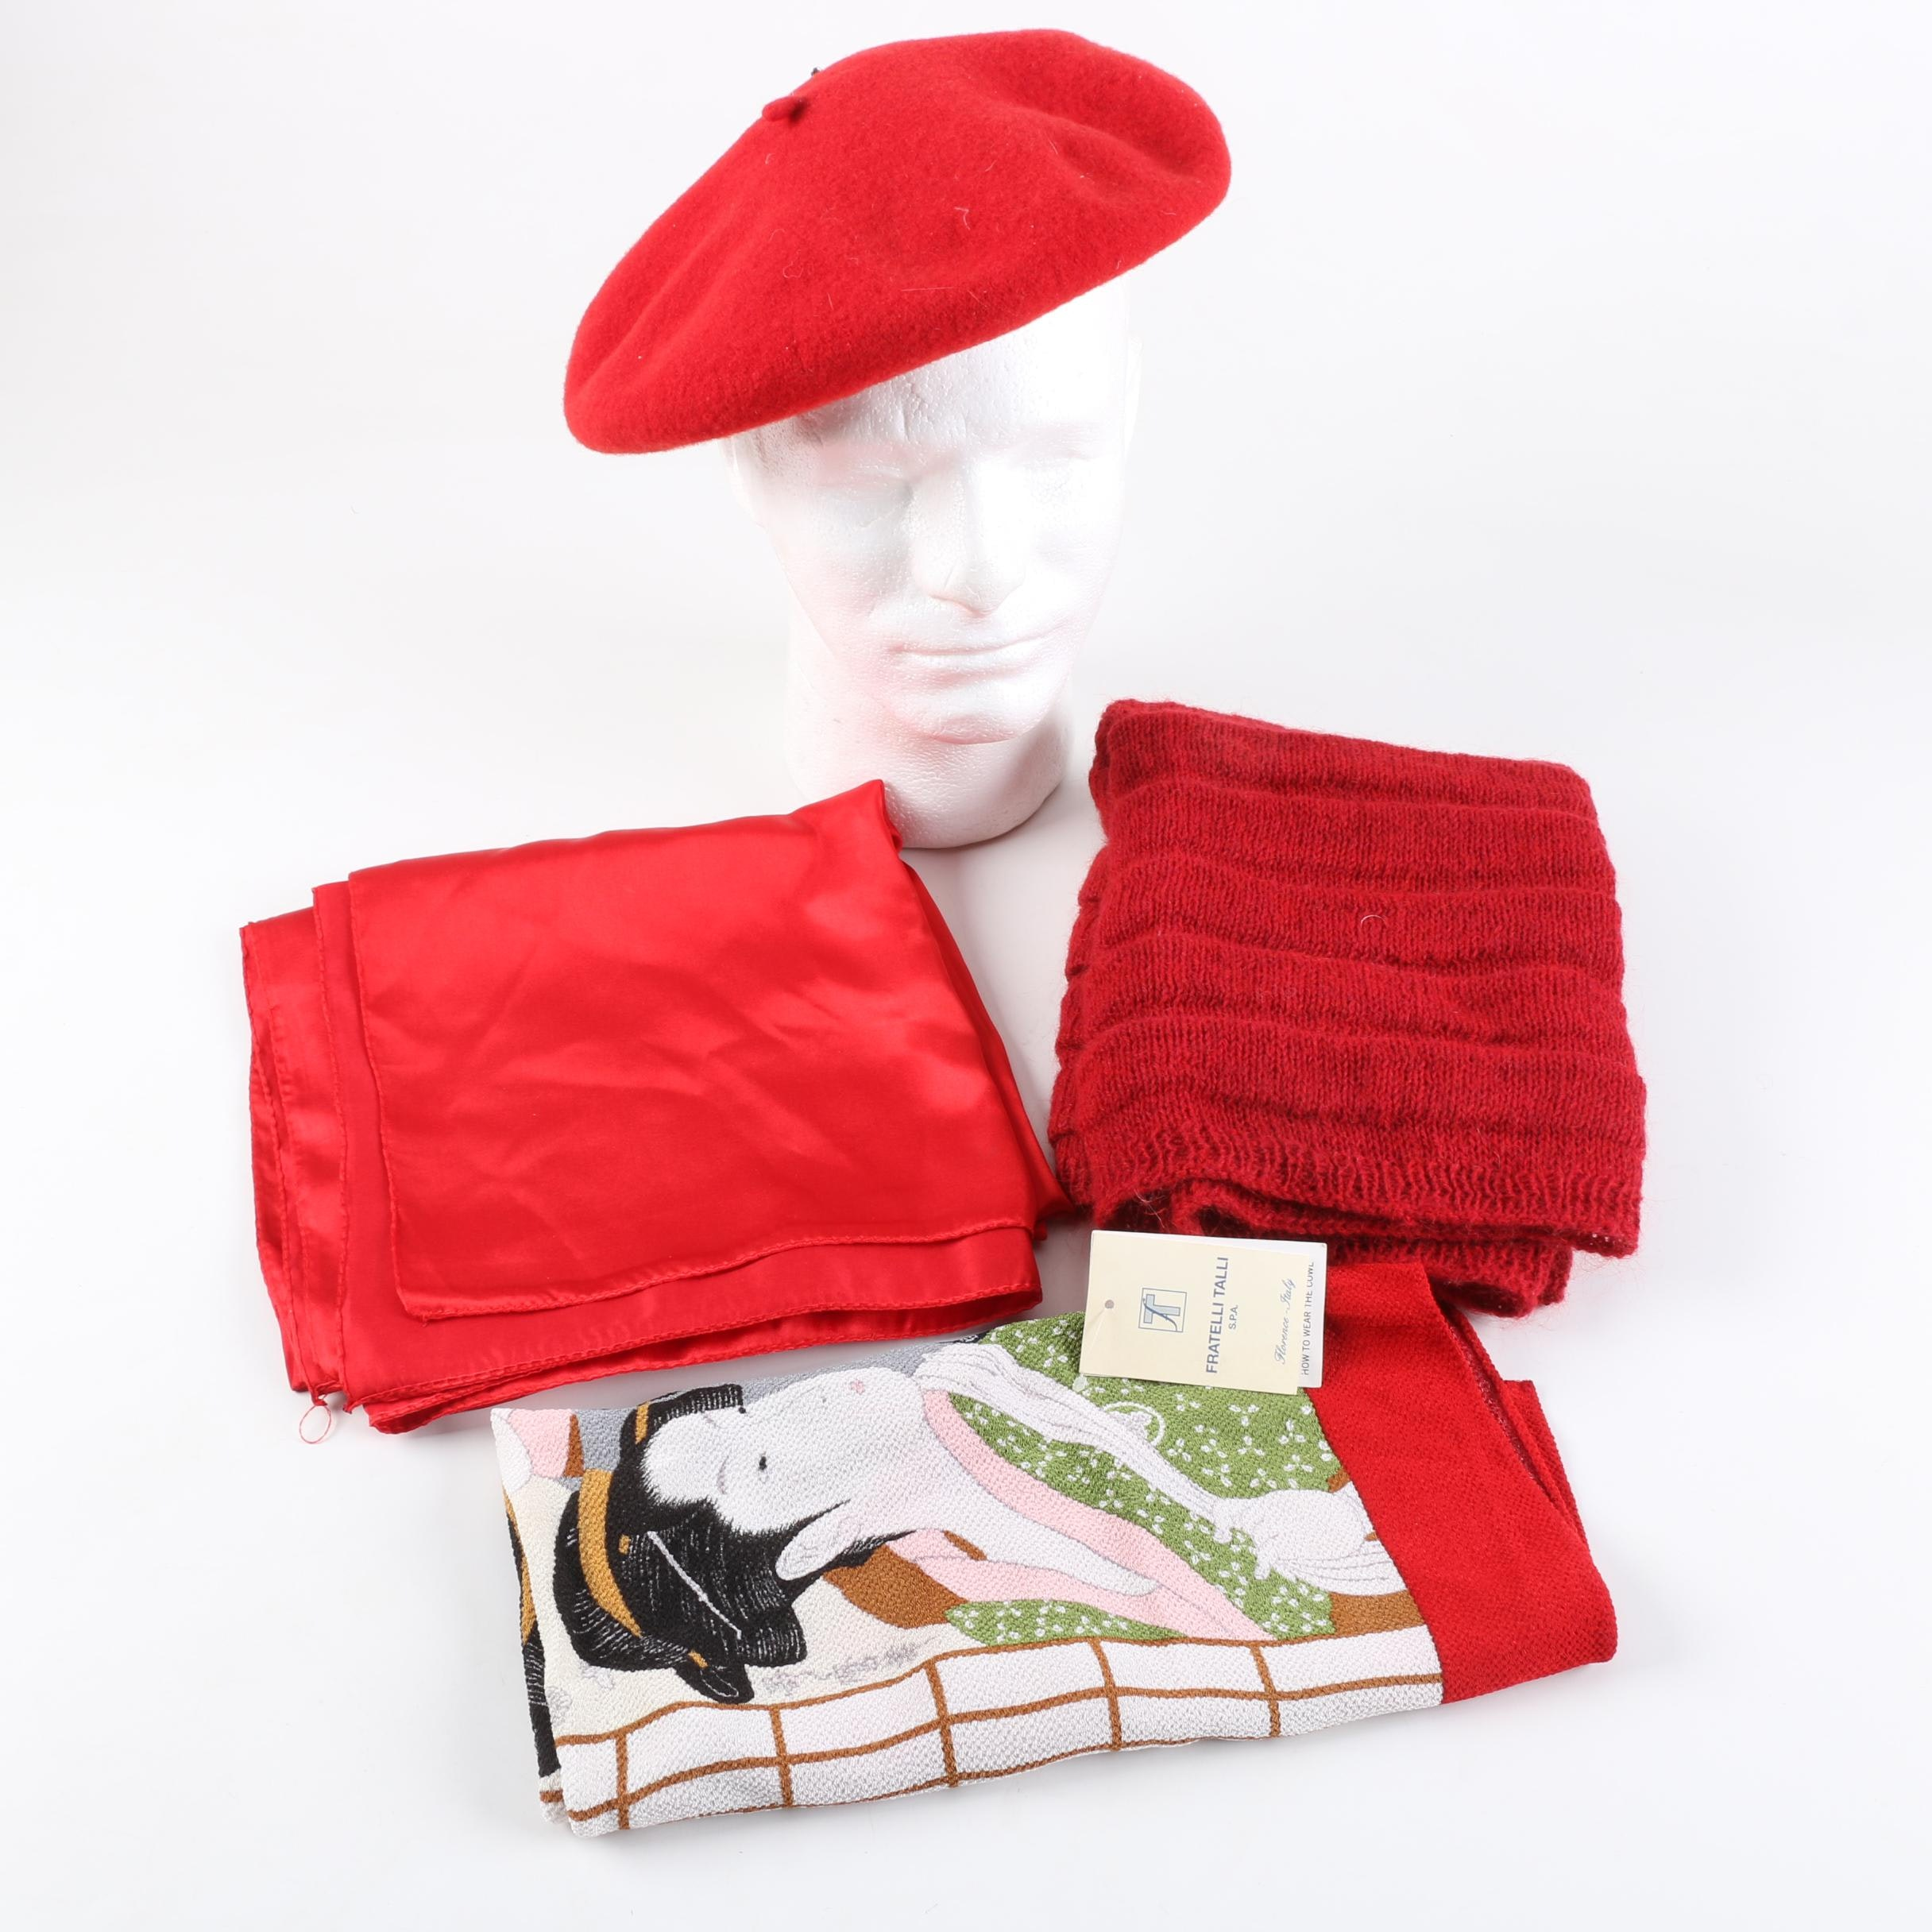 Women's Fashion Accessories and Japanese Furoshiki Wrapping Cloth